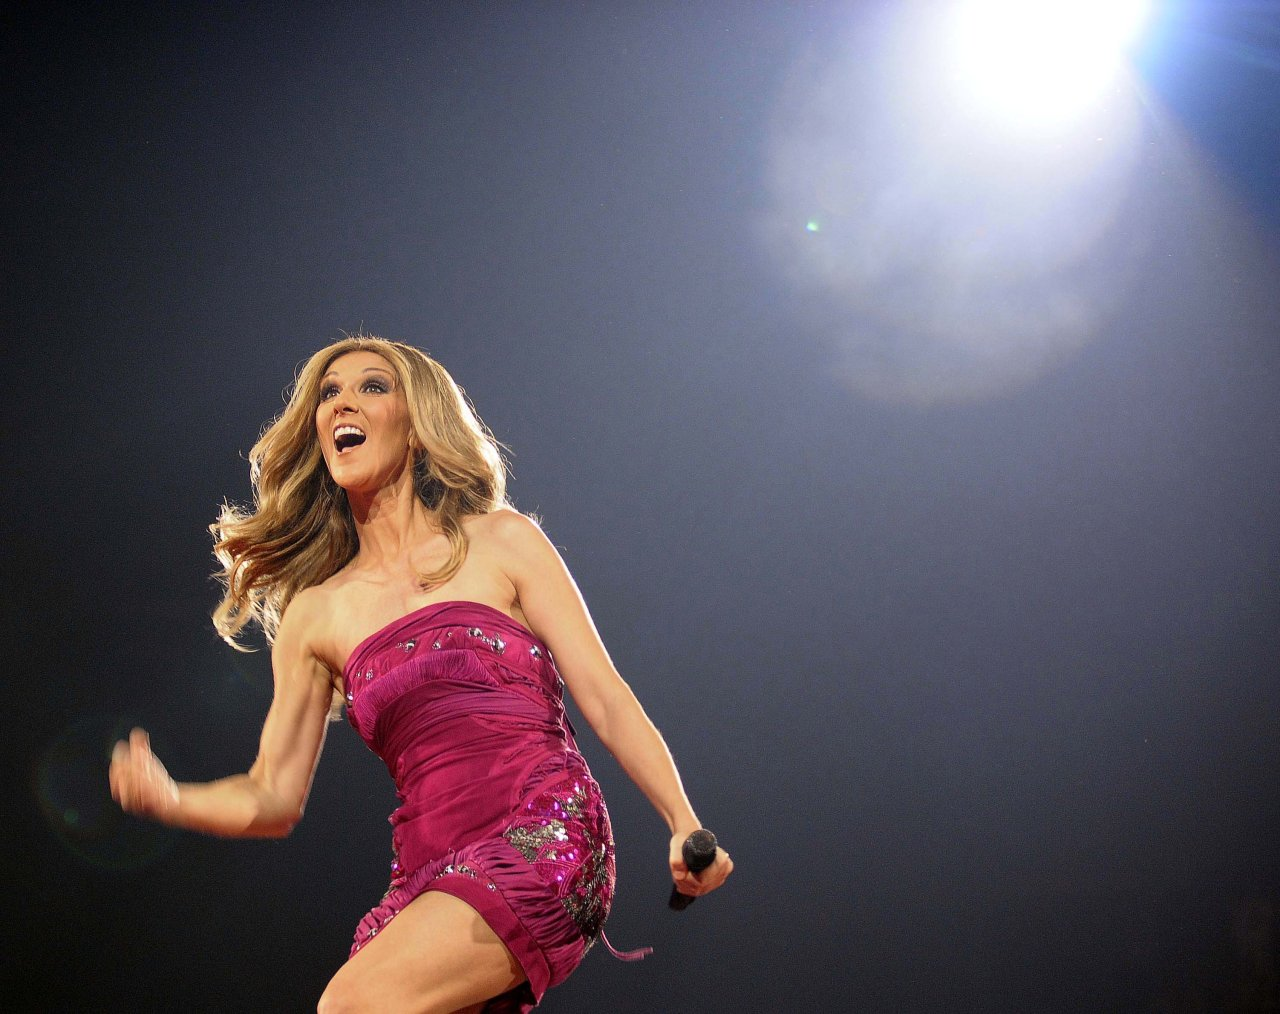 Model celine dion wallpapers 6567 for Adhemar dion maison